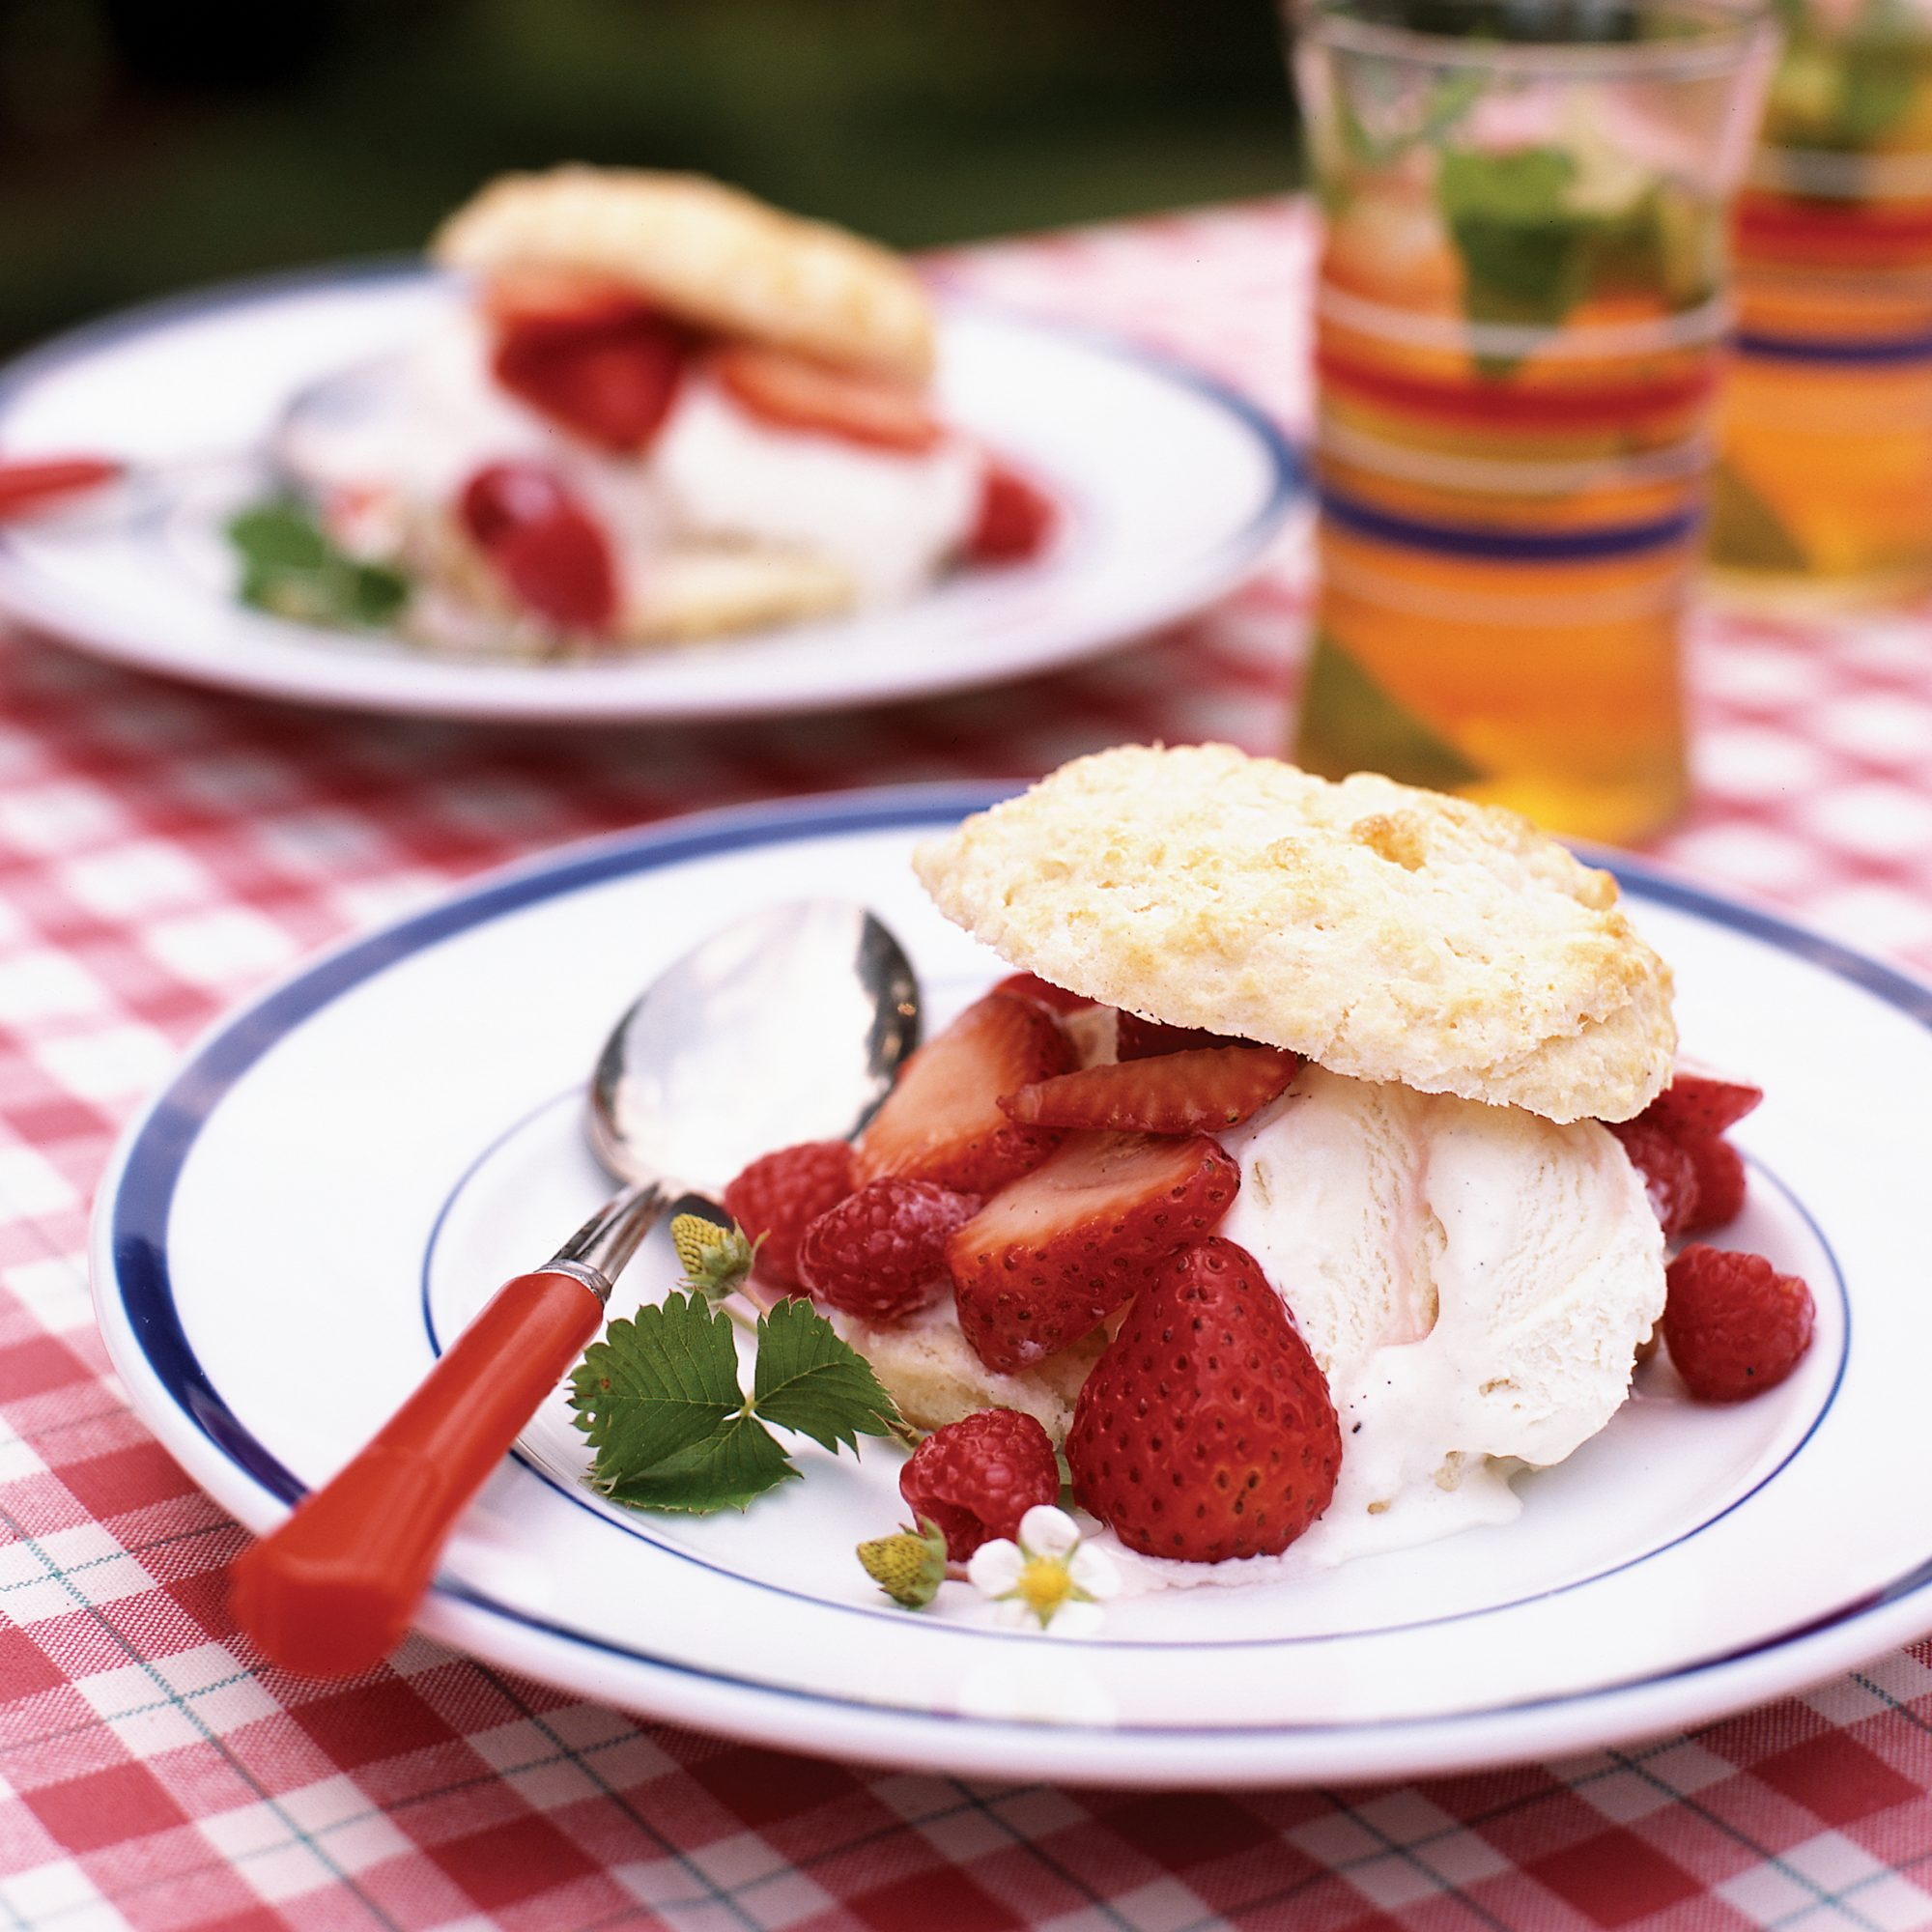 Gramma's Buttermilk Biscuits with Berries and Ice Cream